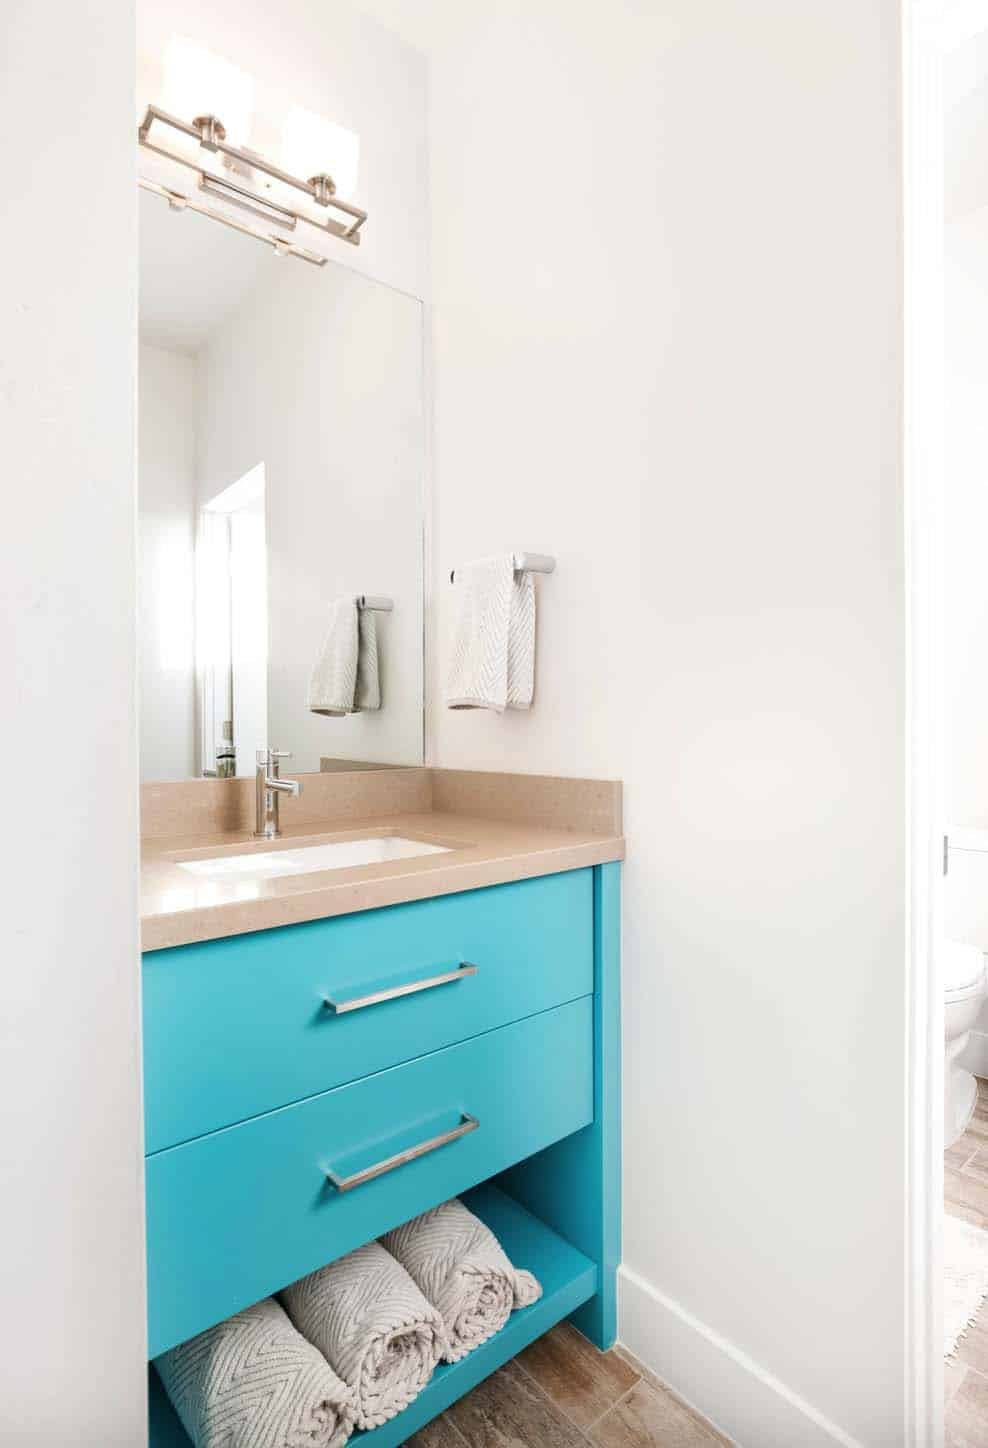 Above The Kids Bathroom Offers A Small Vanity With Cabinets Painted In Colorful Blue Tone